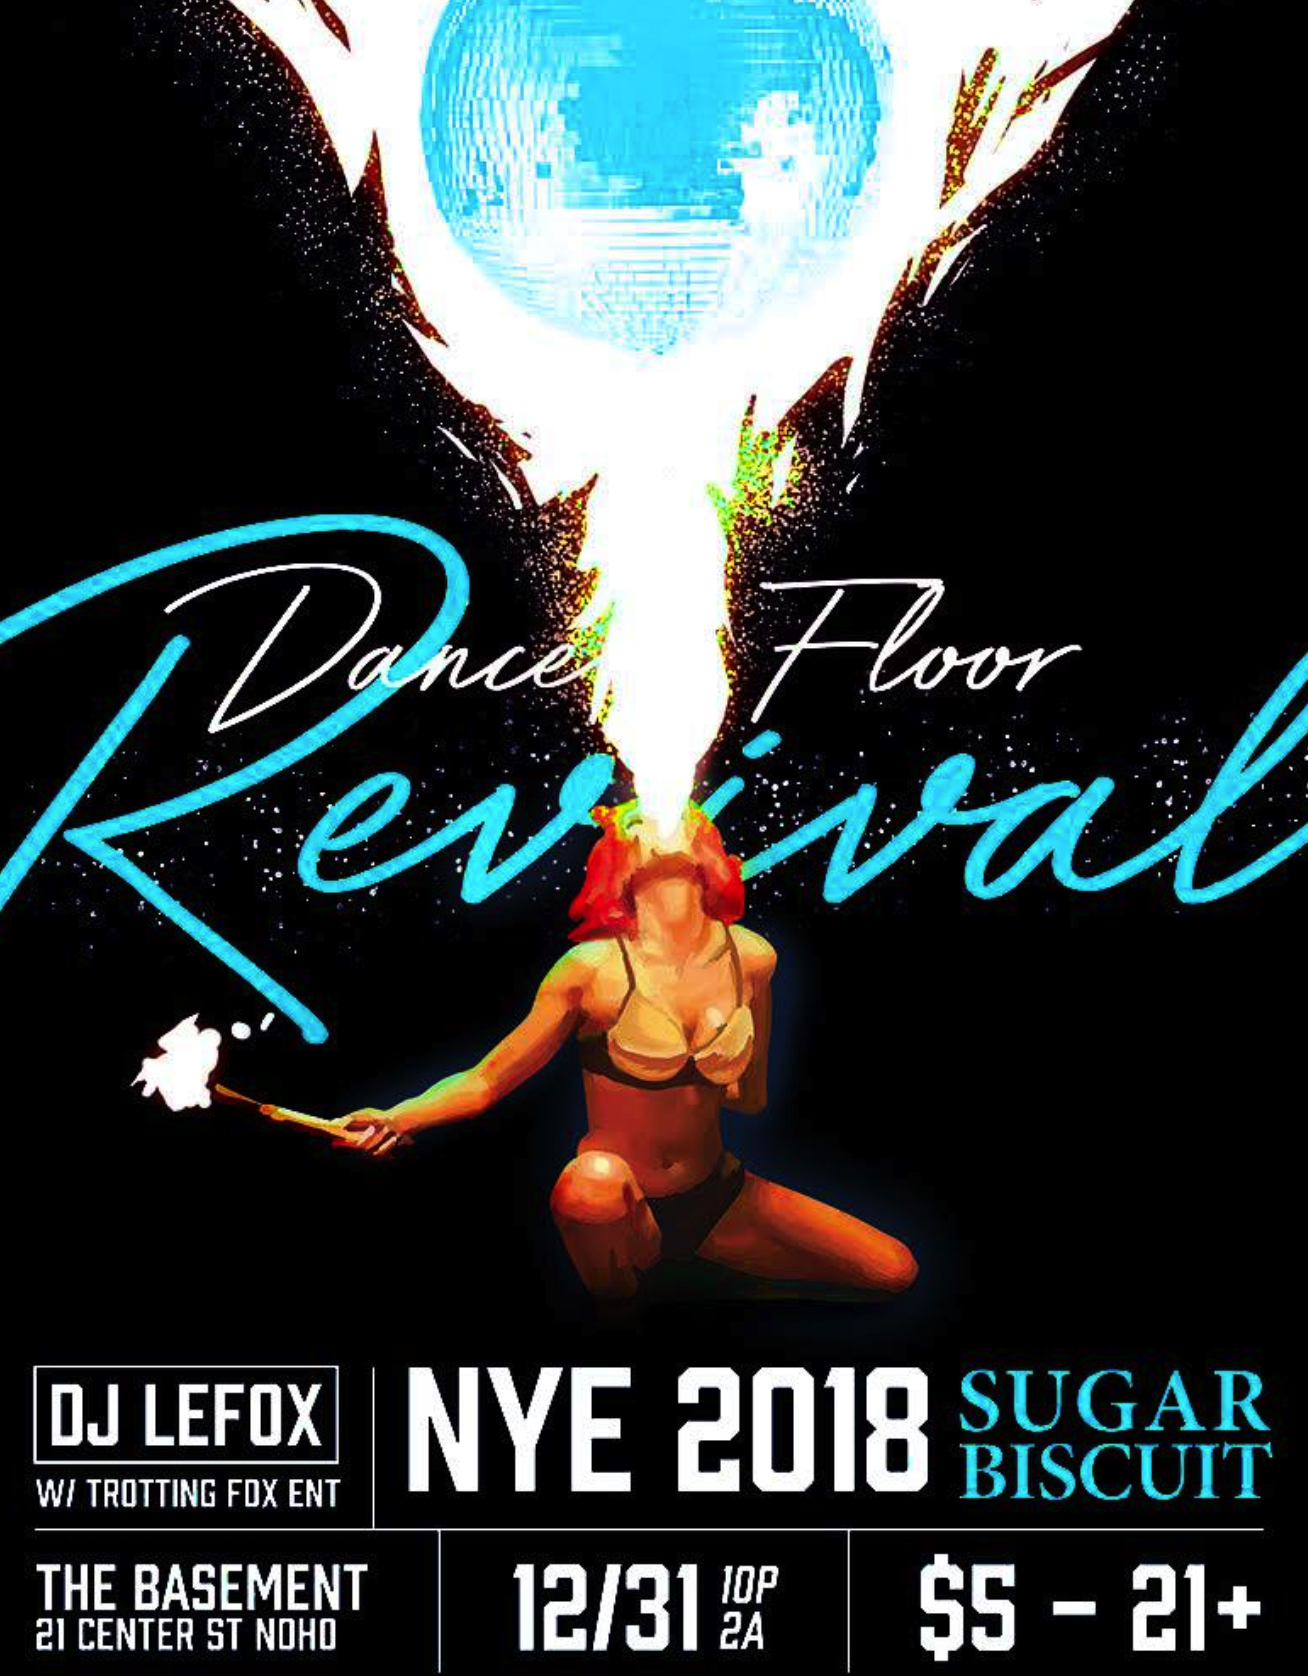 Sugar Biscuit NYE 2018: Dance Floor Revival a QUEER Dance Party w/LeFox & Trotting Fox Ent